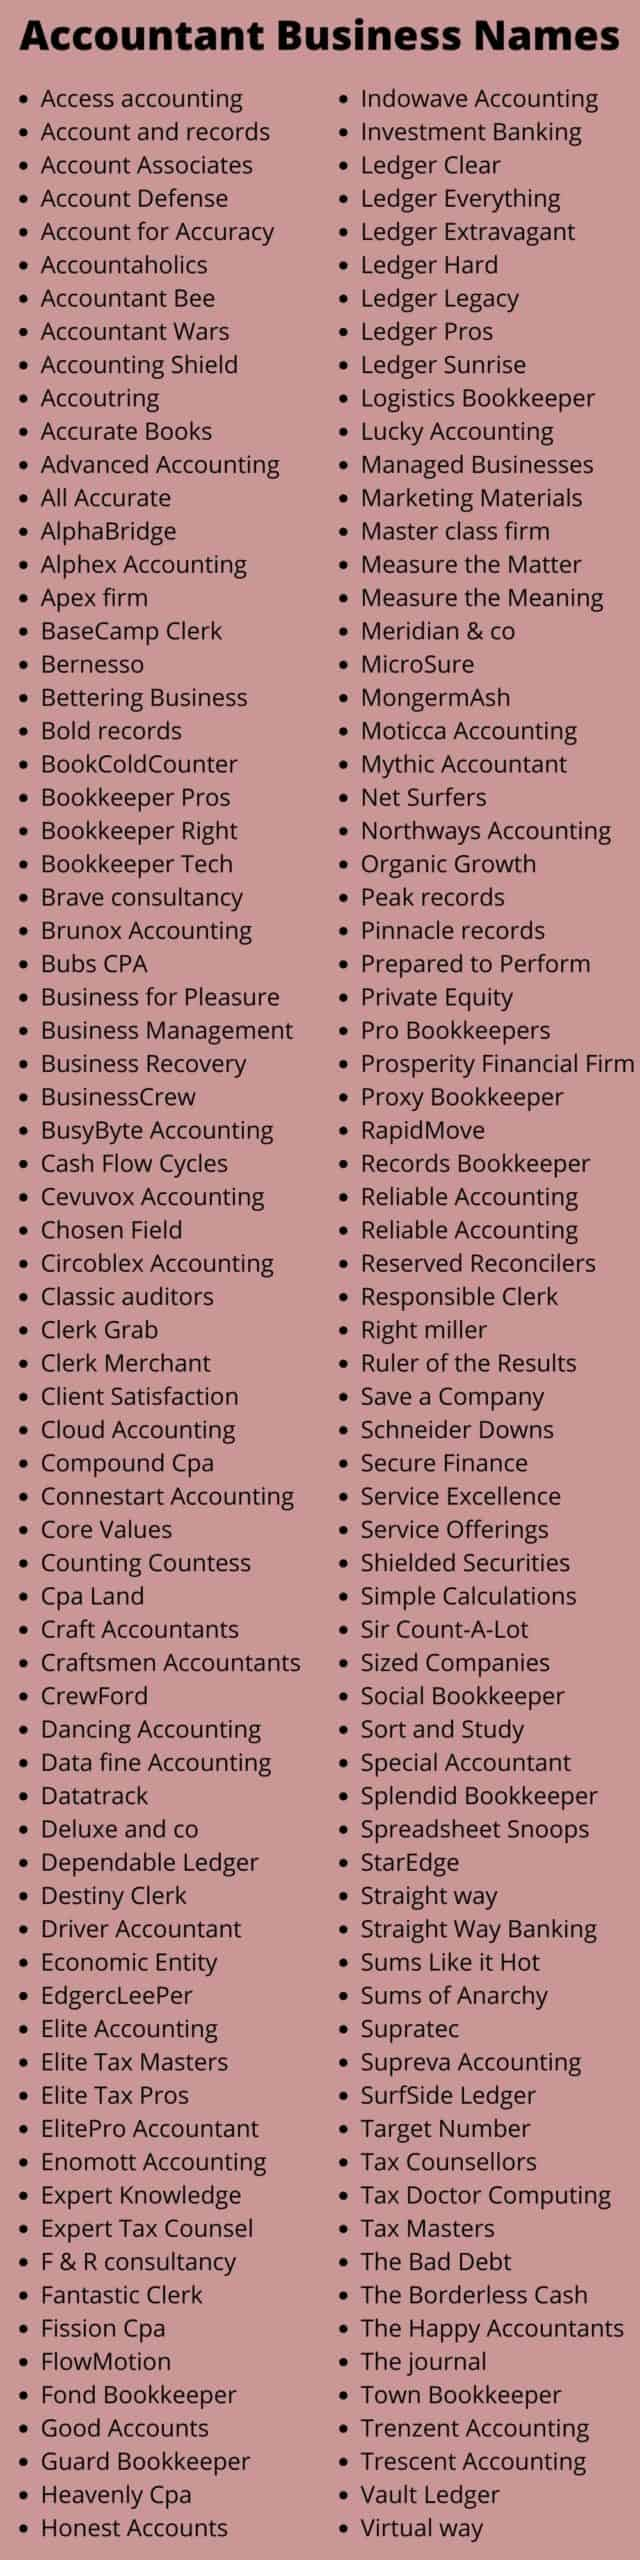 Accountant Business Names